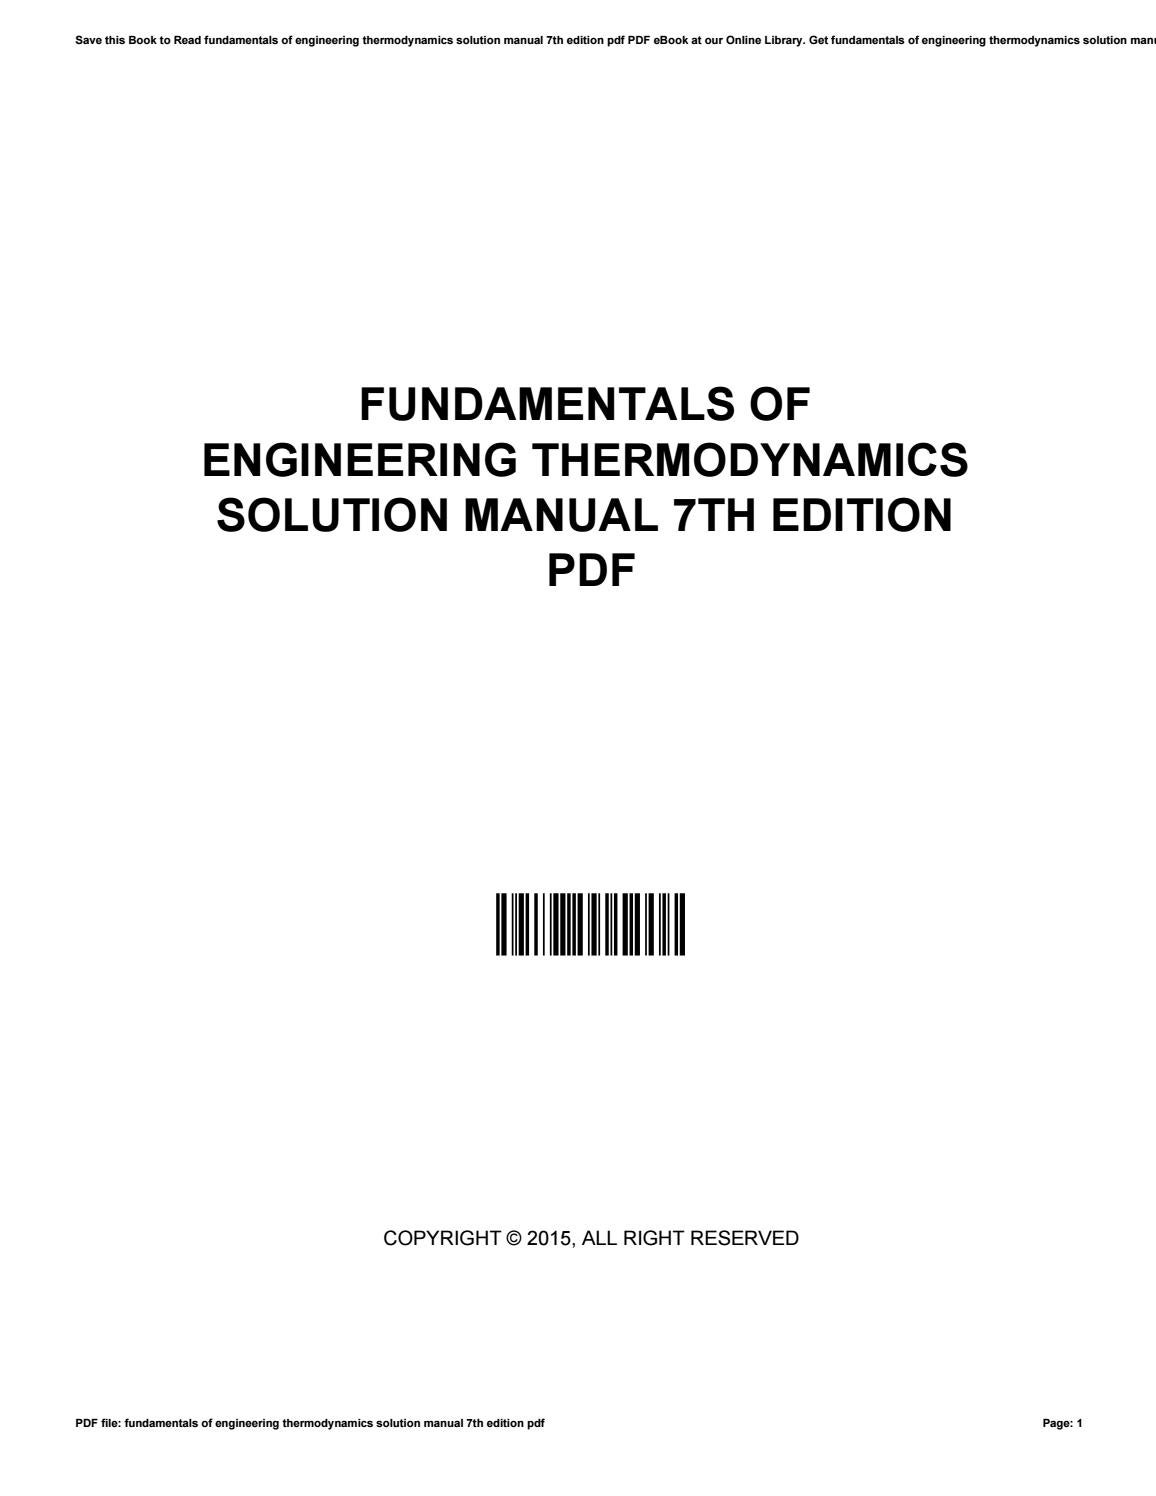 fundamentals of biochemical engineering solutions manual